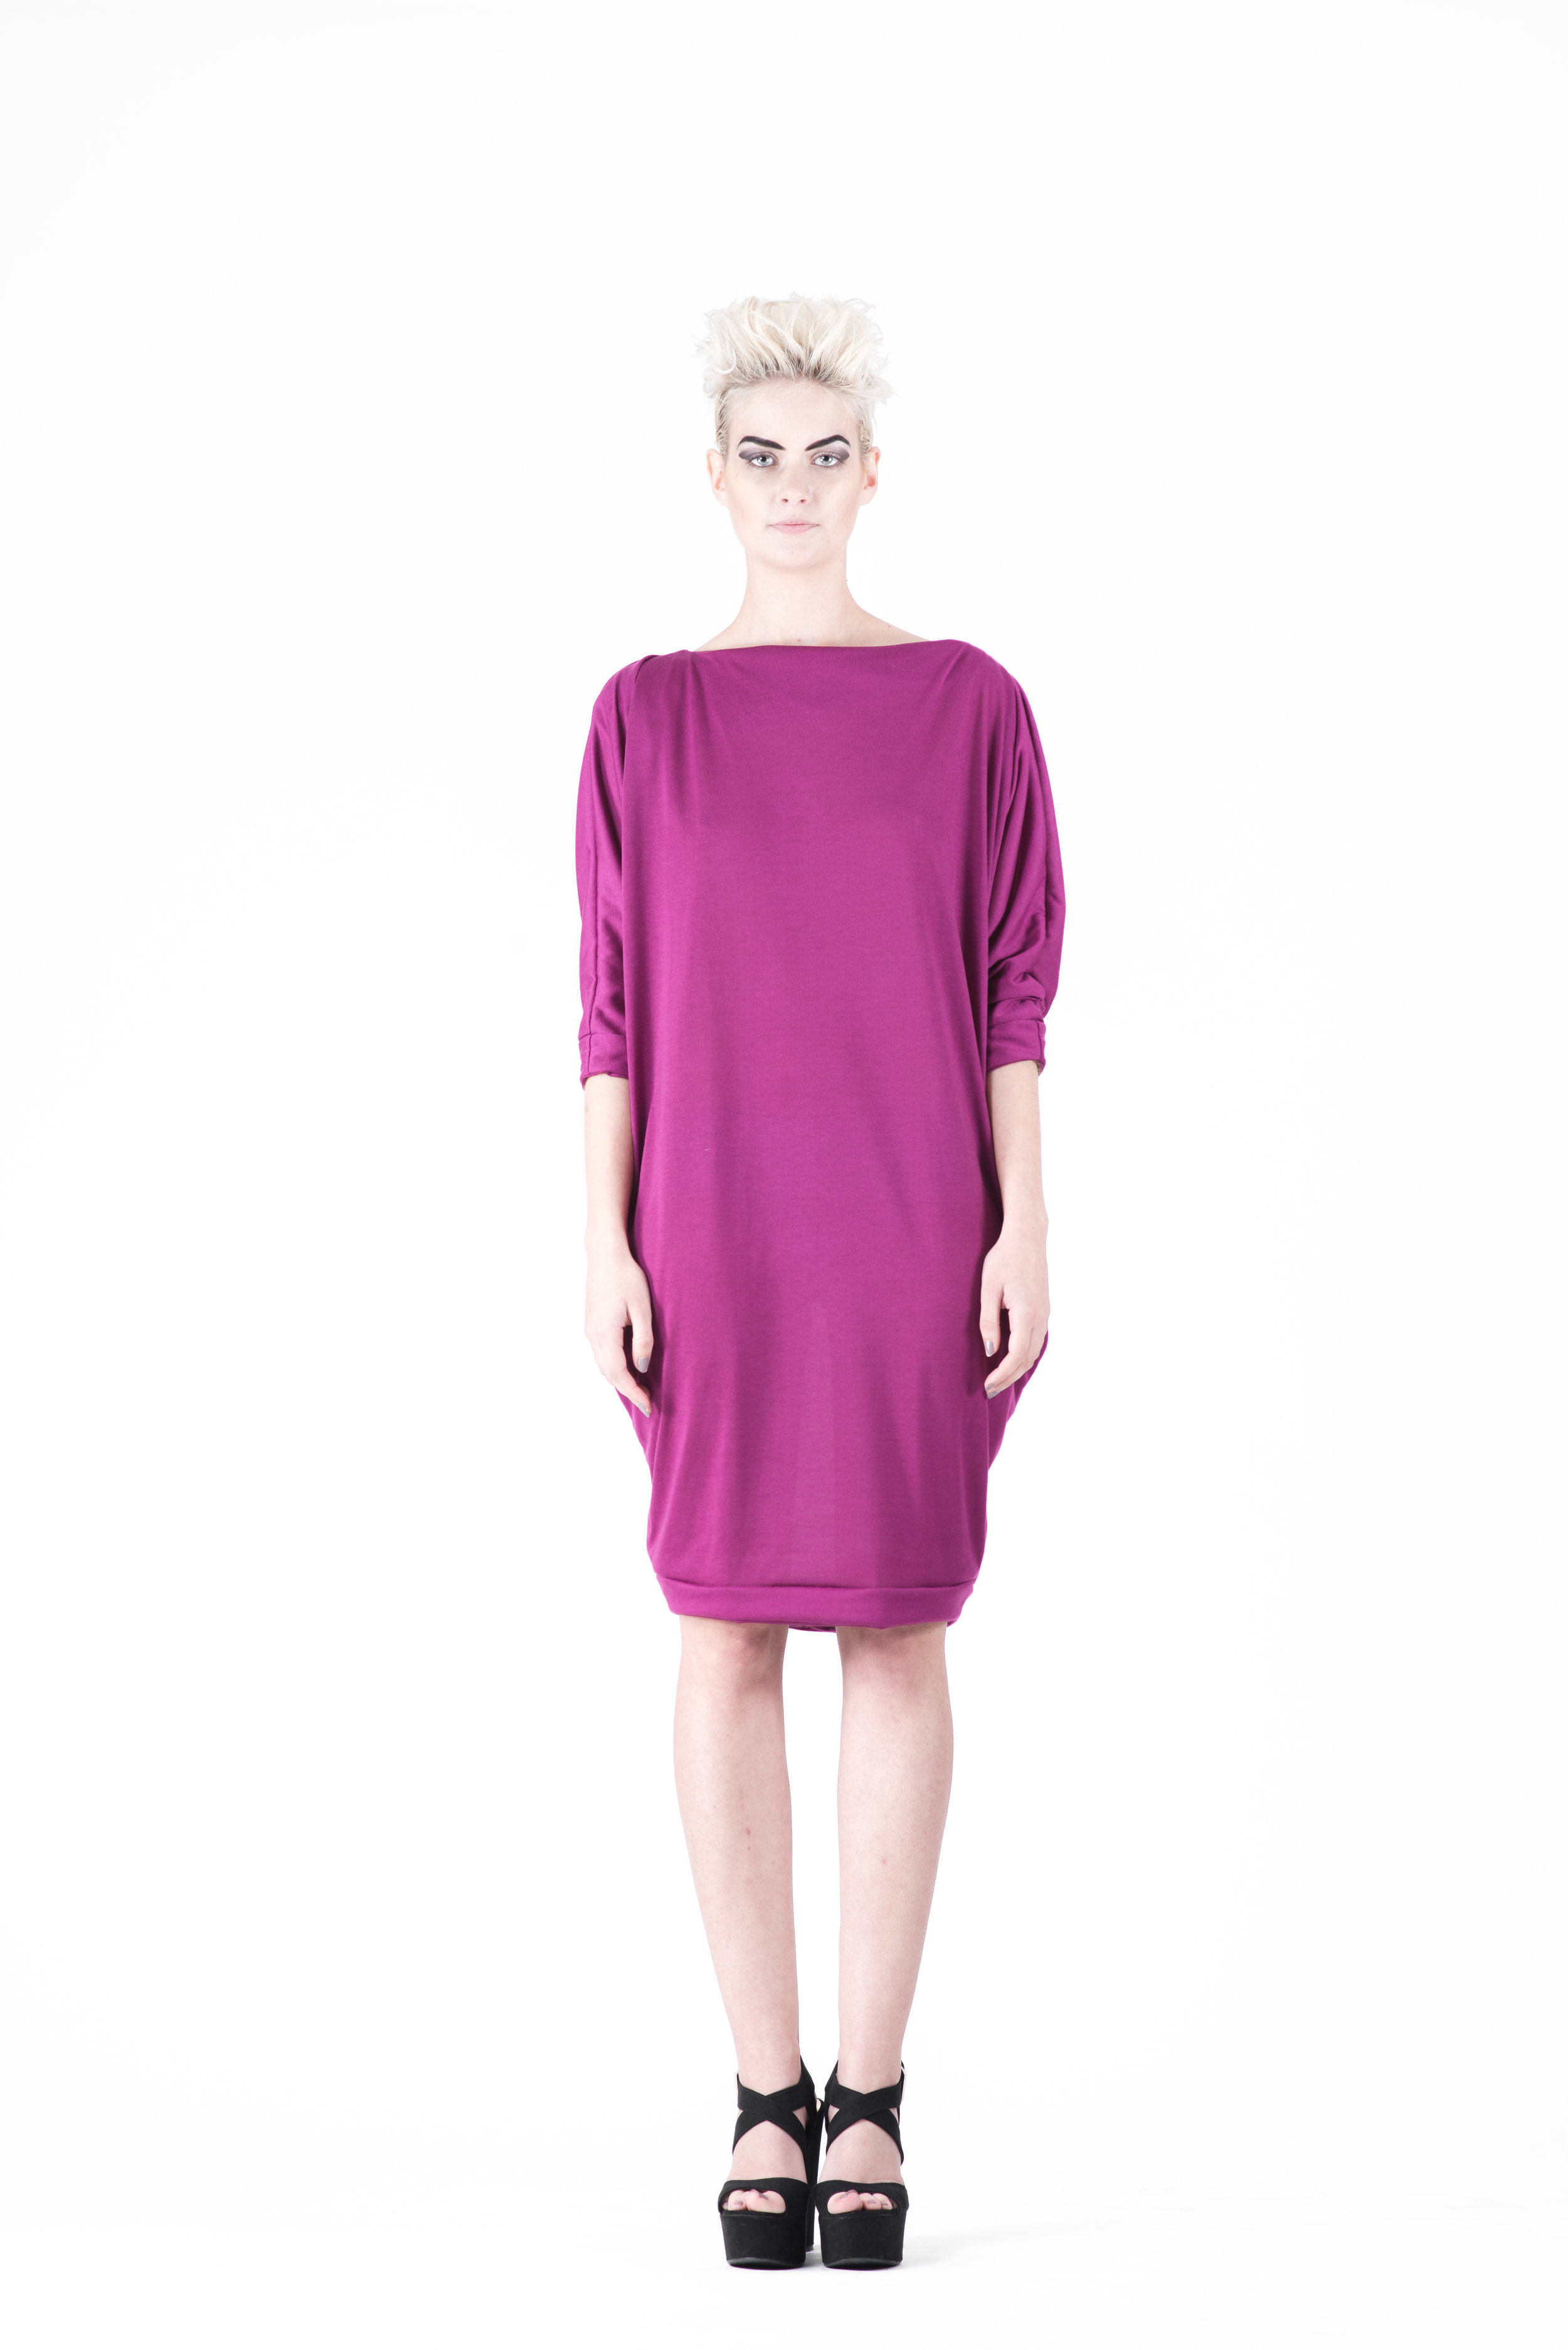 zaramia-ava-zaramiaava-leeds-fashion-designer-ethical-sustainable-tailored-minimalist-ayaka-magenta-dress-versatile-drape-cowl-styling-womenswear-models-photoshoot-30